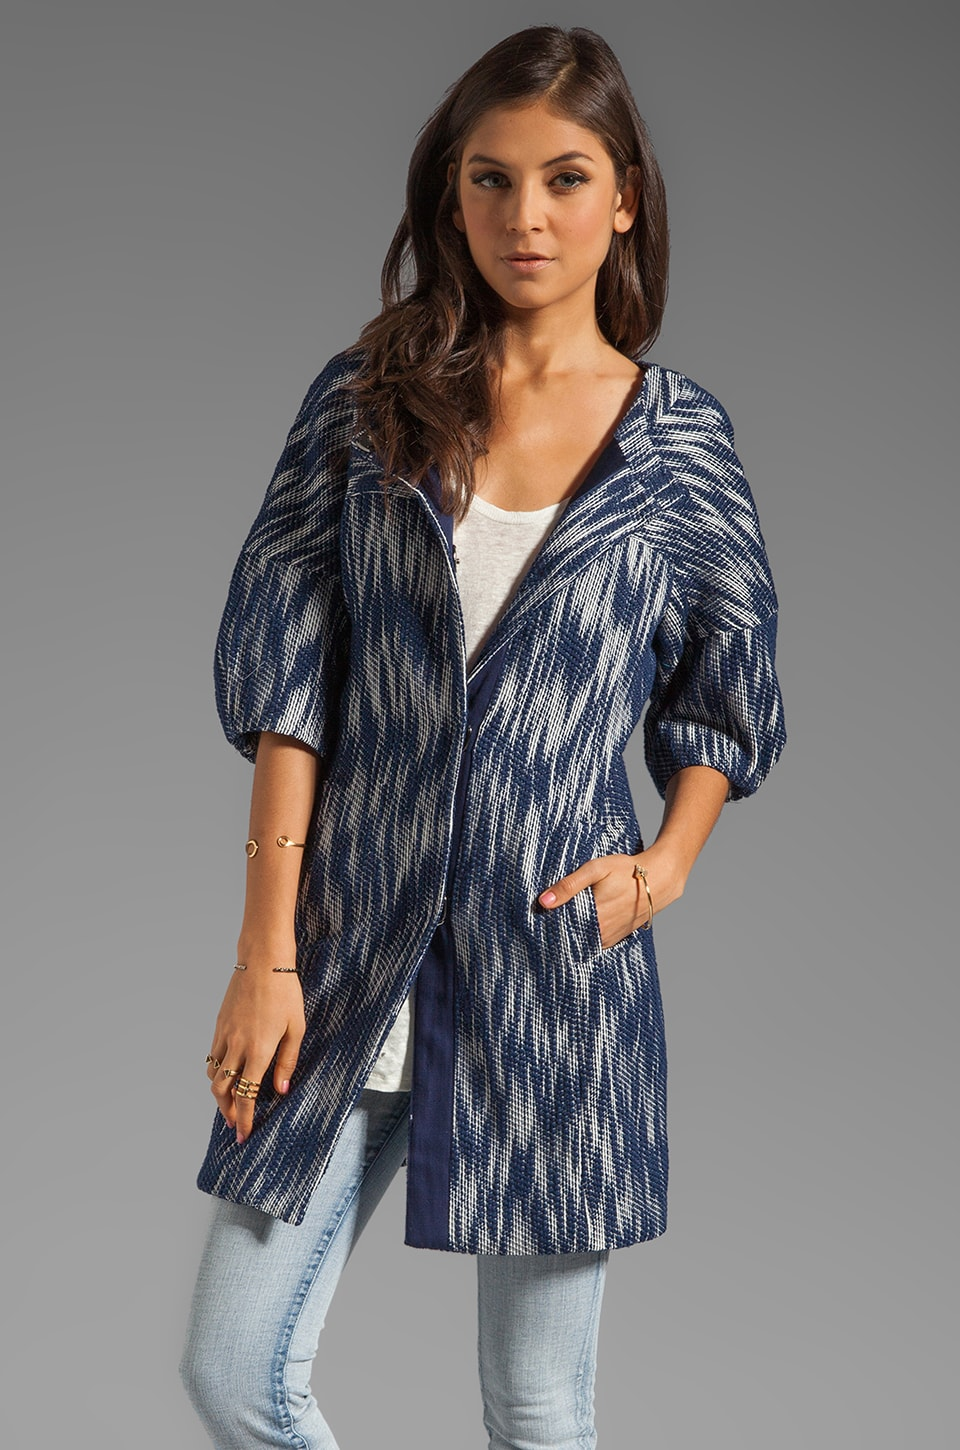 MILLY Ikat Jacquard Bianca Day Coat in Navy